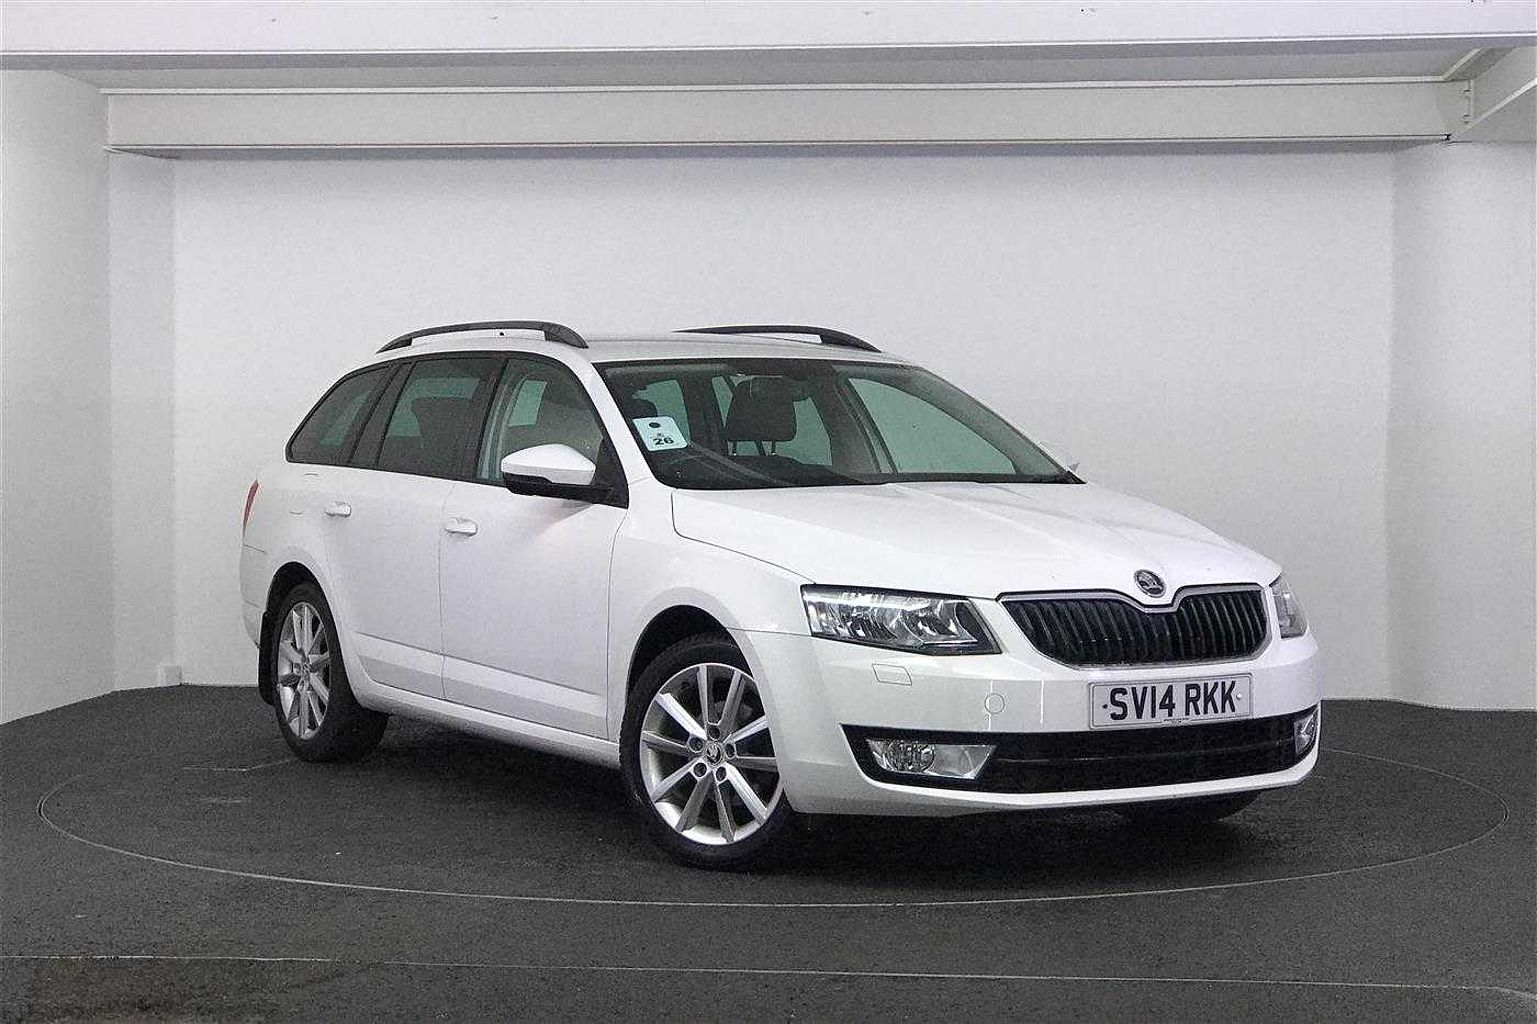 SKODA Octavia 1.6 TDI CR Elegance 5-Door Estate